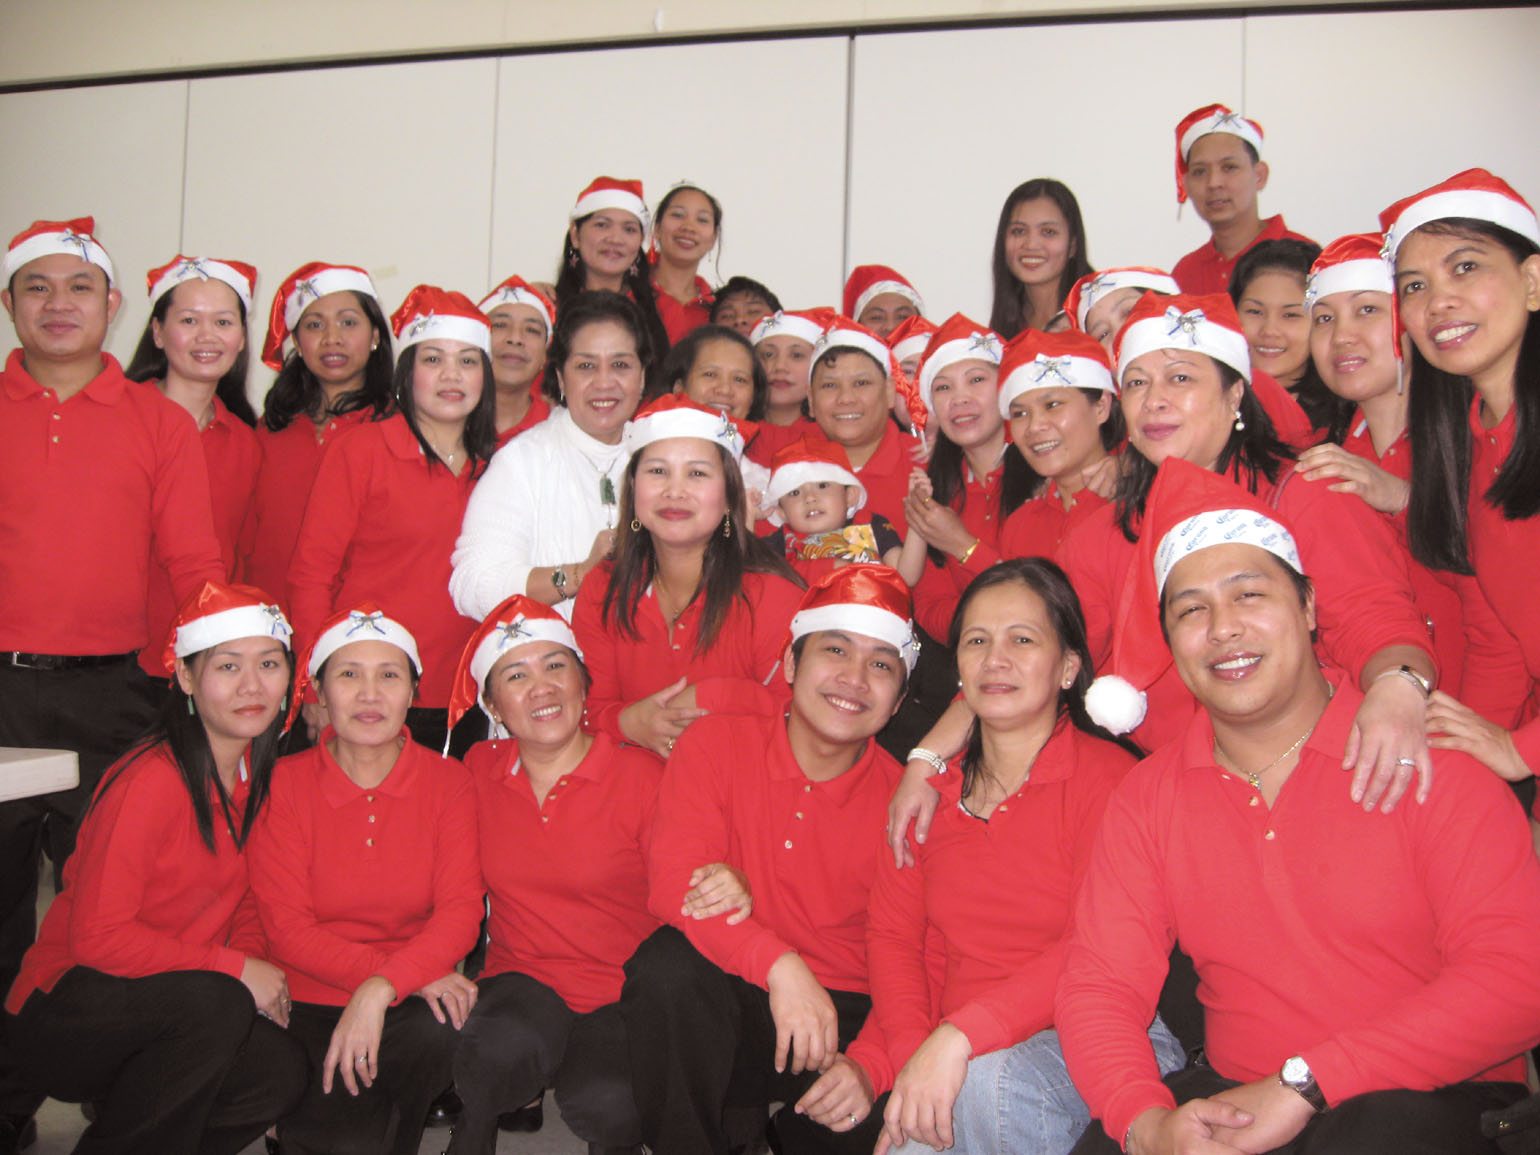 Members of the Family Life Group celebrate Christmas at St. Christopher's Church in Taipei last Sunday.